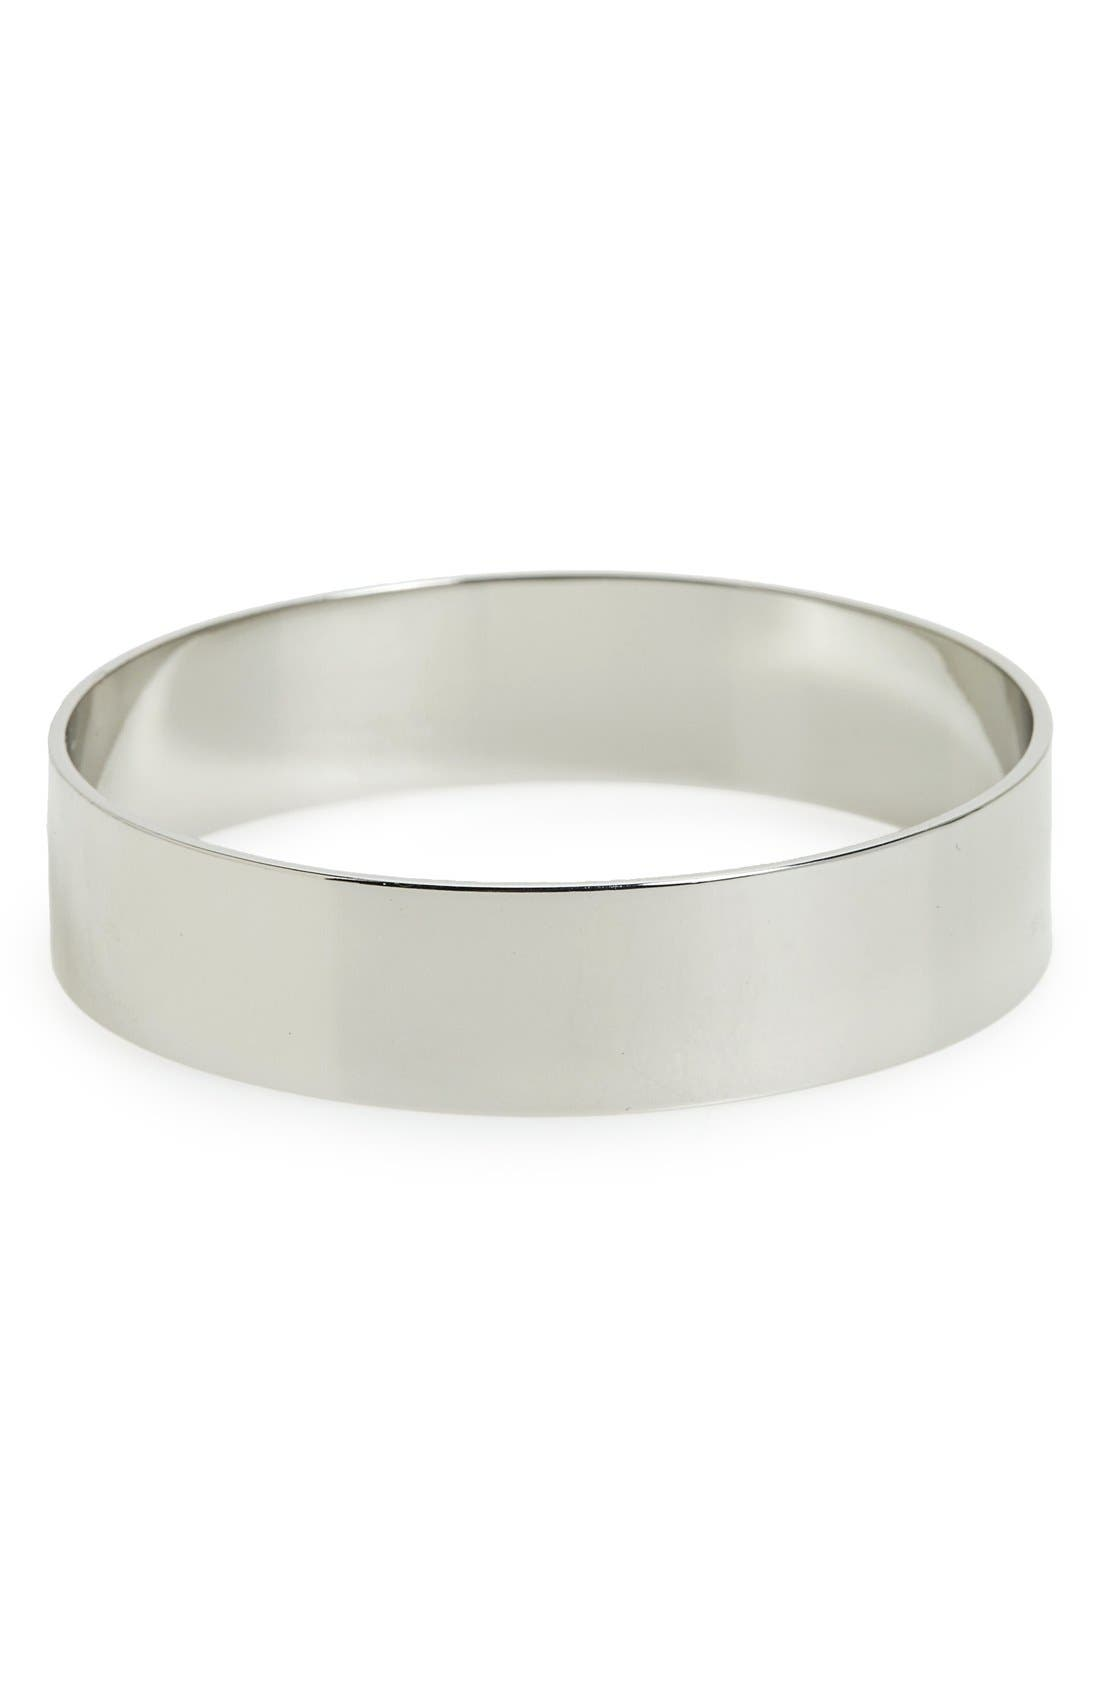 Main Image - Nordstrom Wide Band Bangle